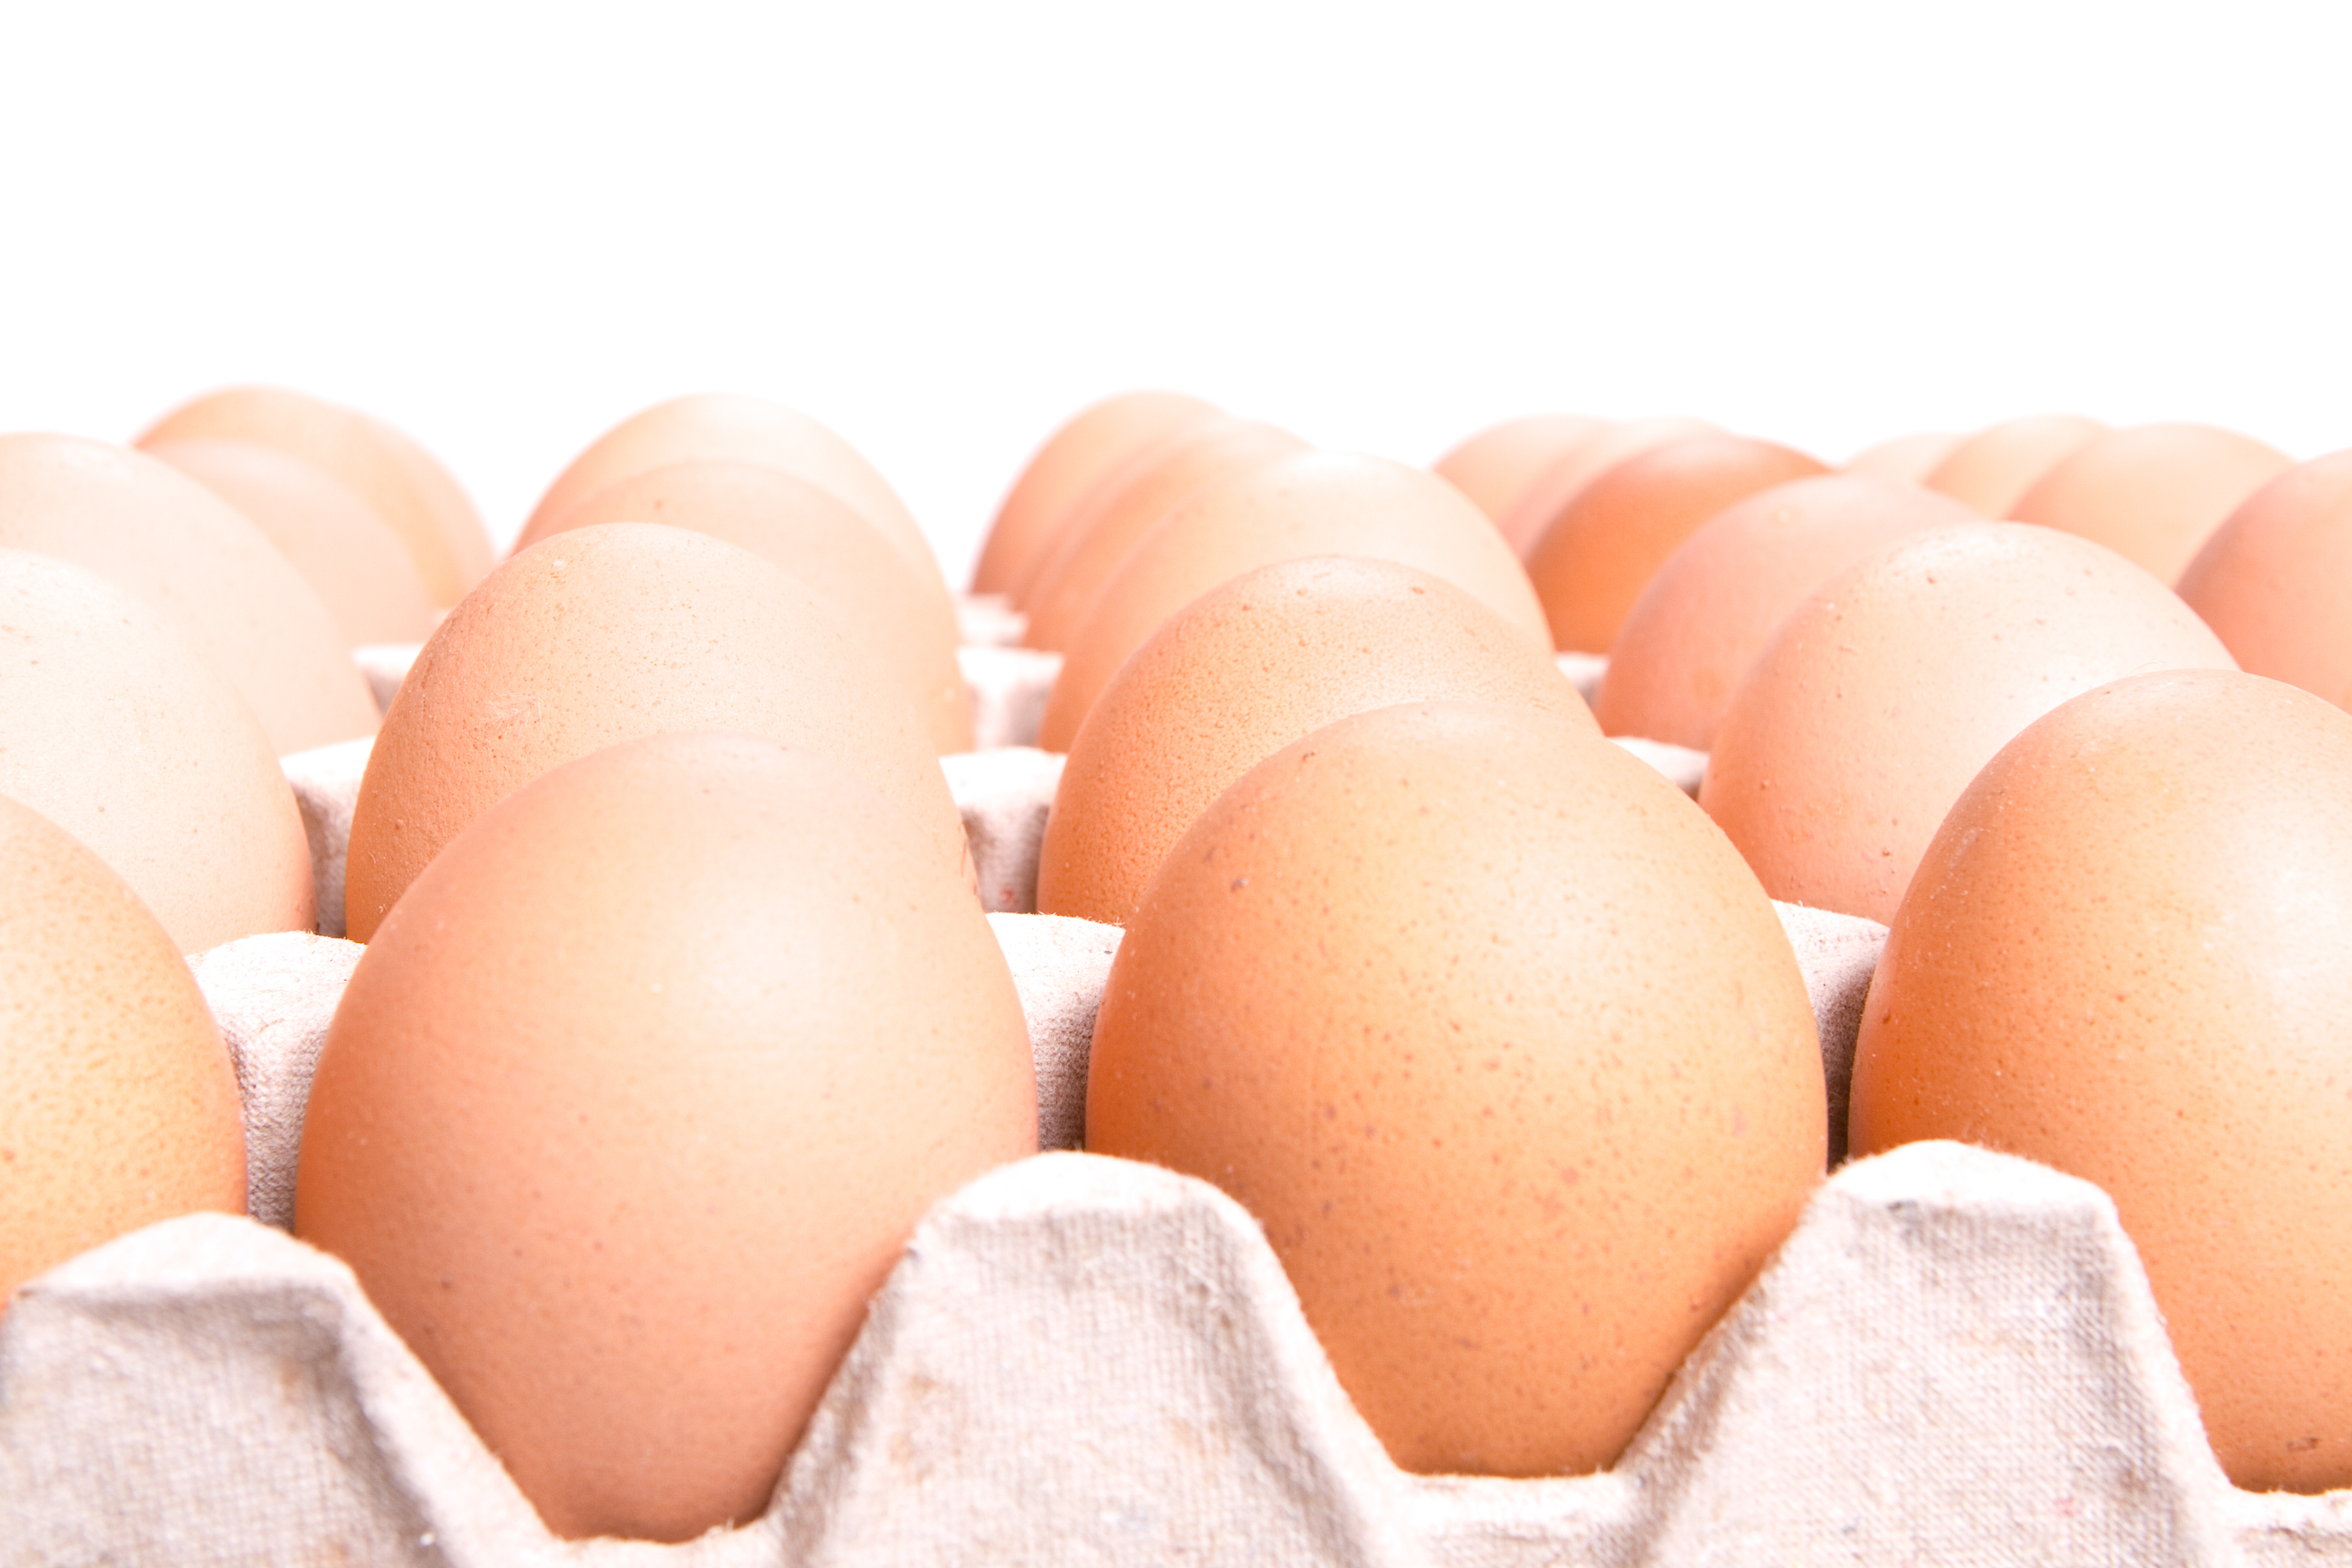 eggs, Above, Healthy, View, Uncooked, HQ Photo